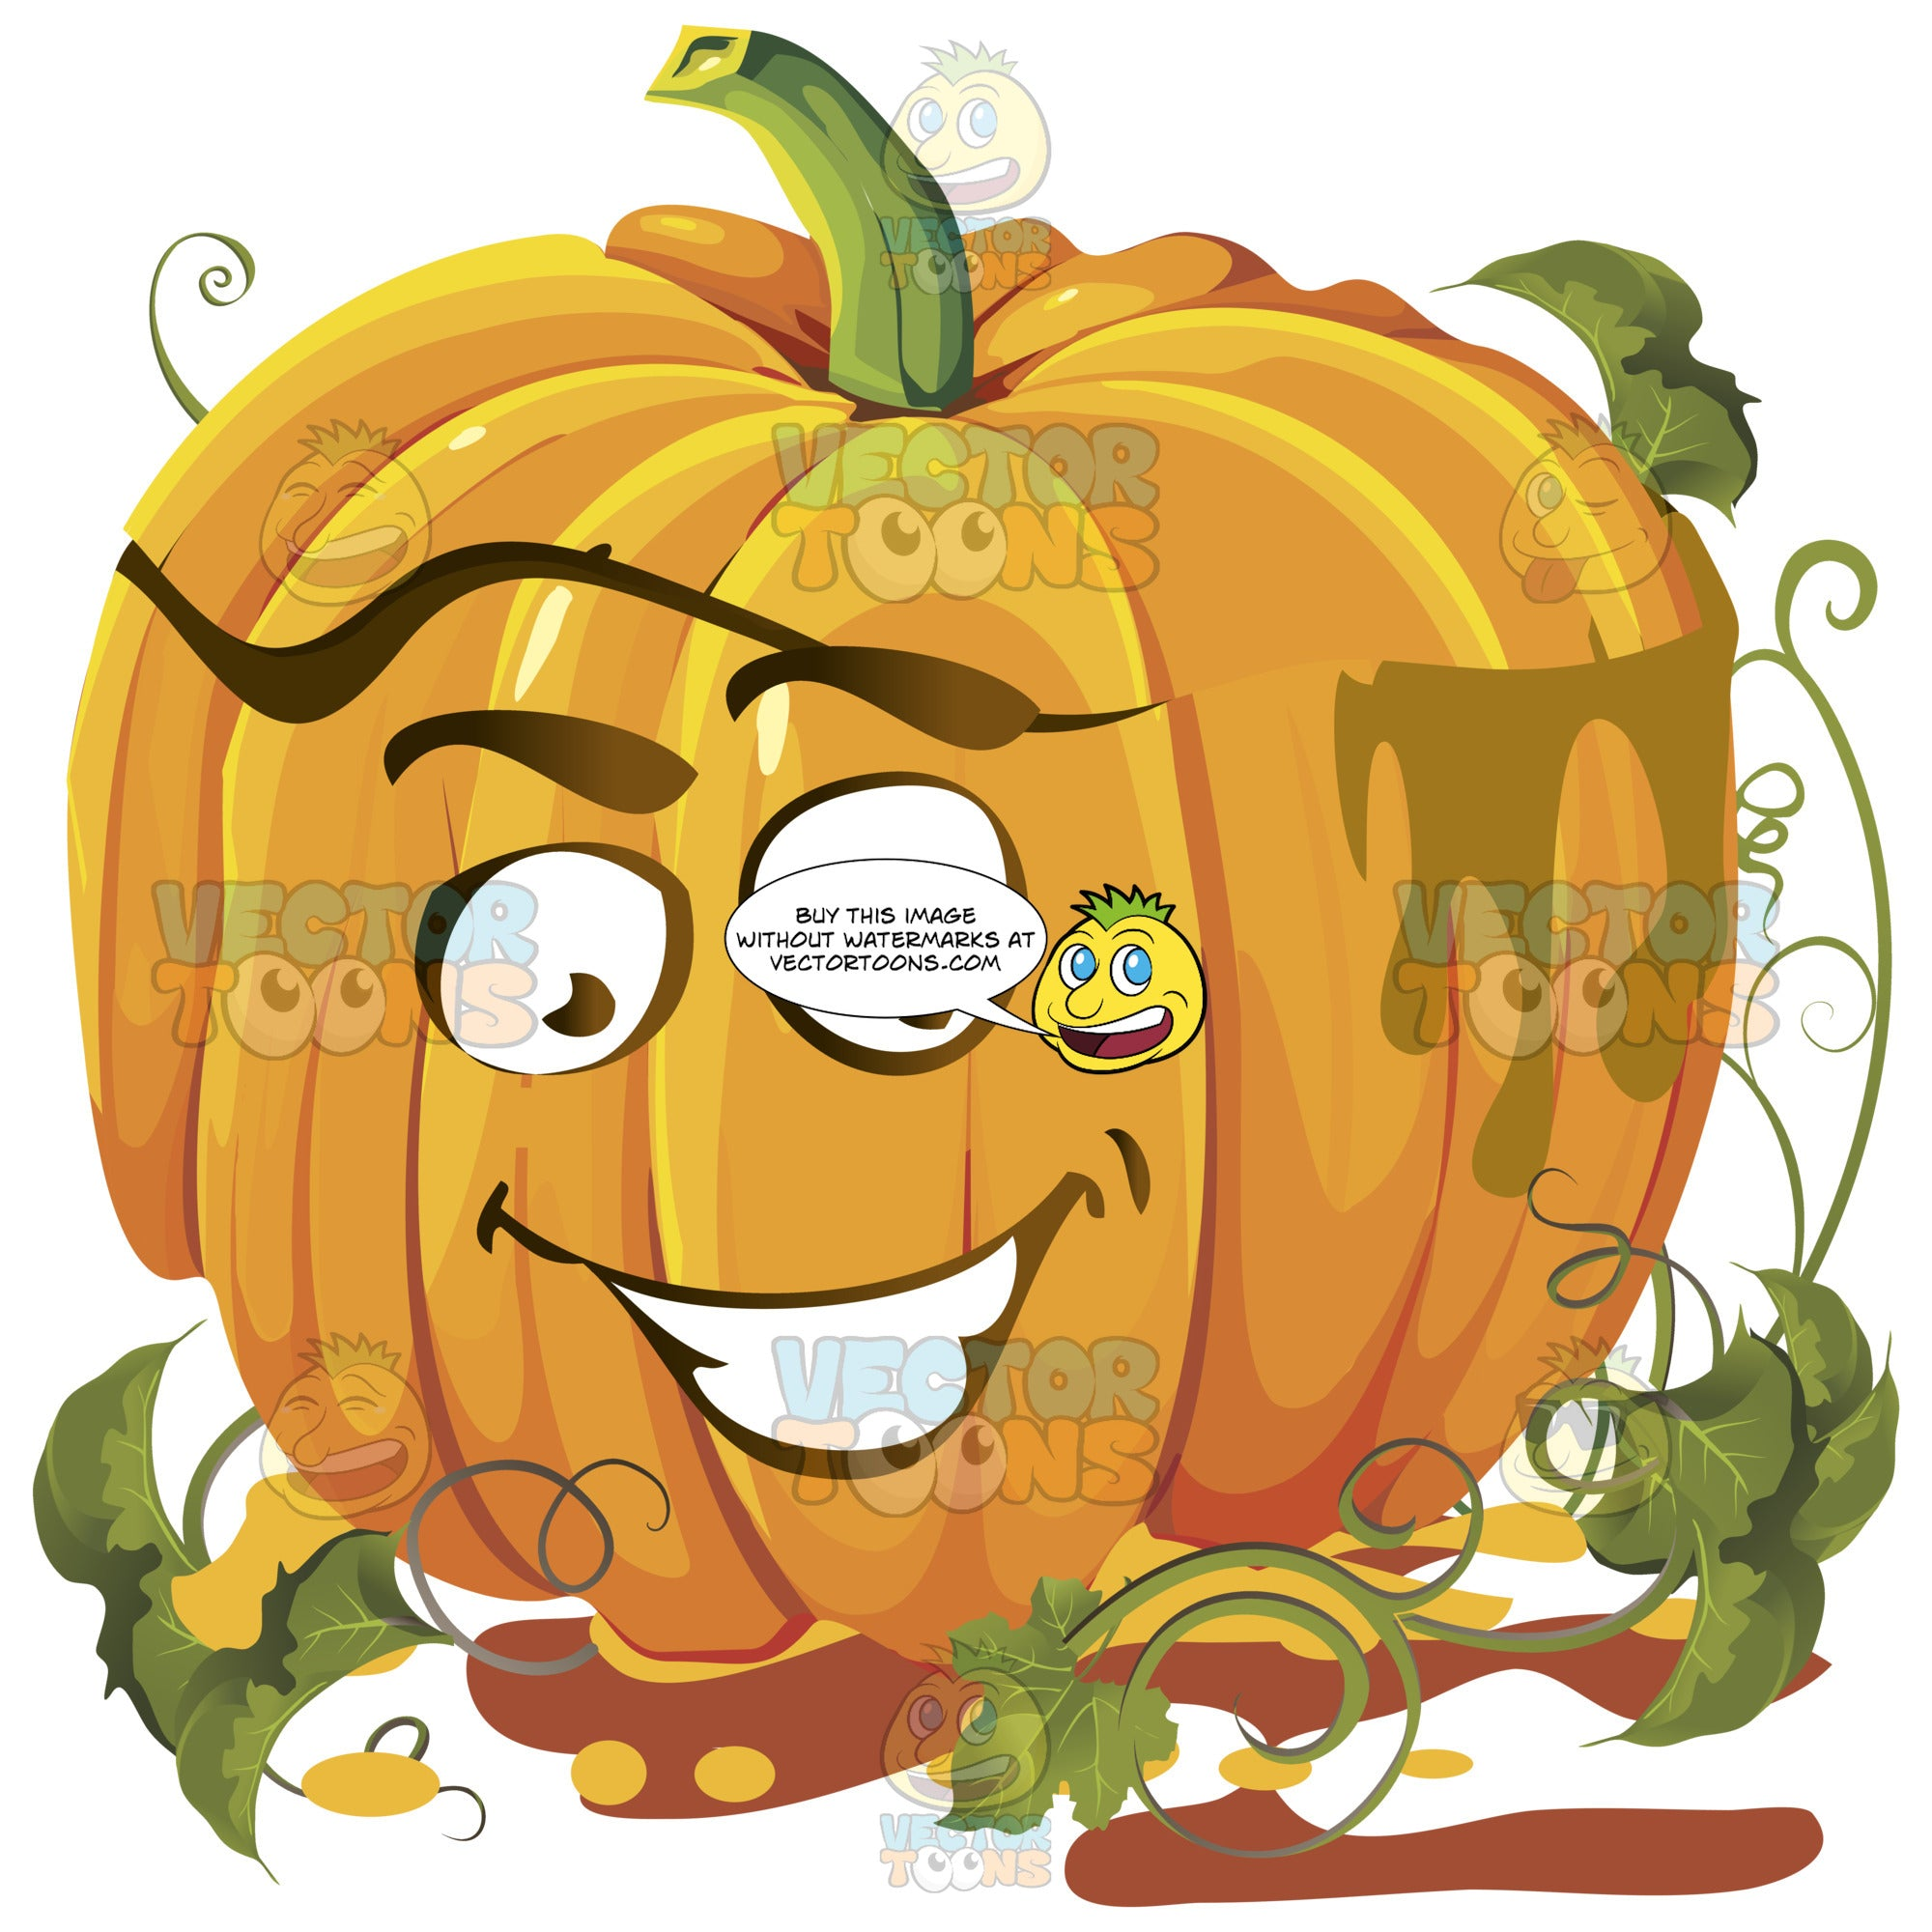 Ecstatic Smiling Orange Pumpkin Face With Green Vines